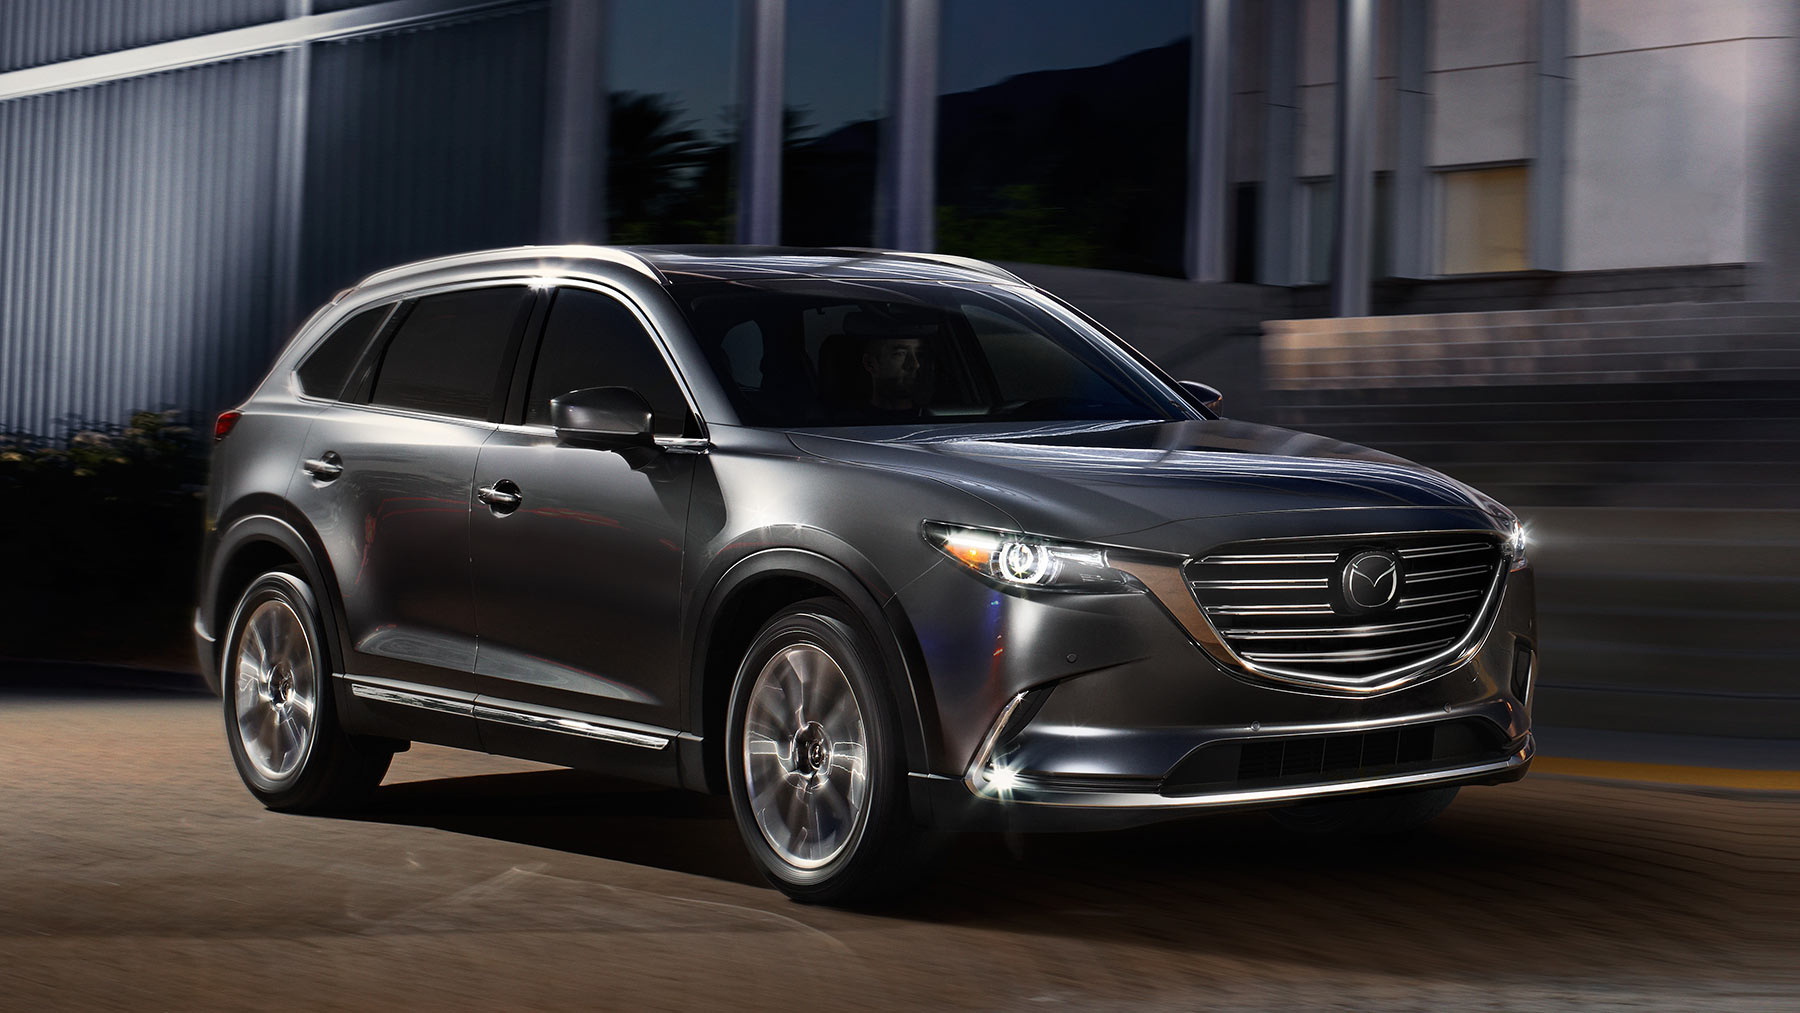 2018 Mazda CX-9 for Sale near Fairfield, CA